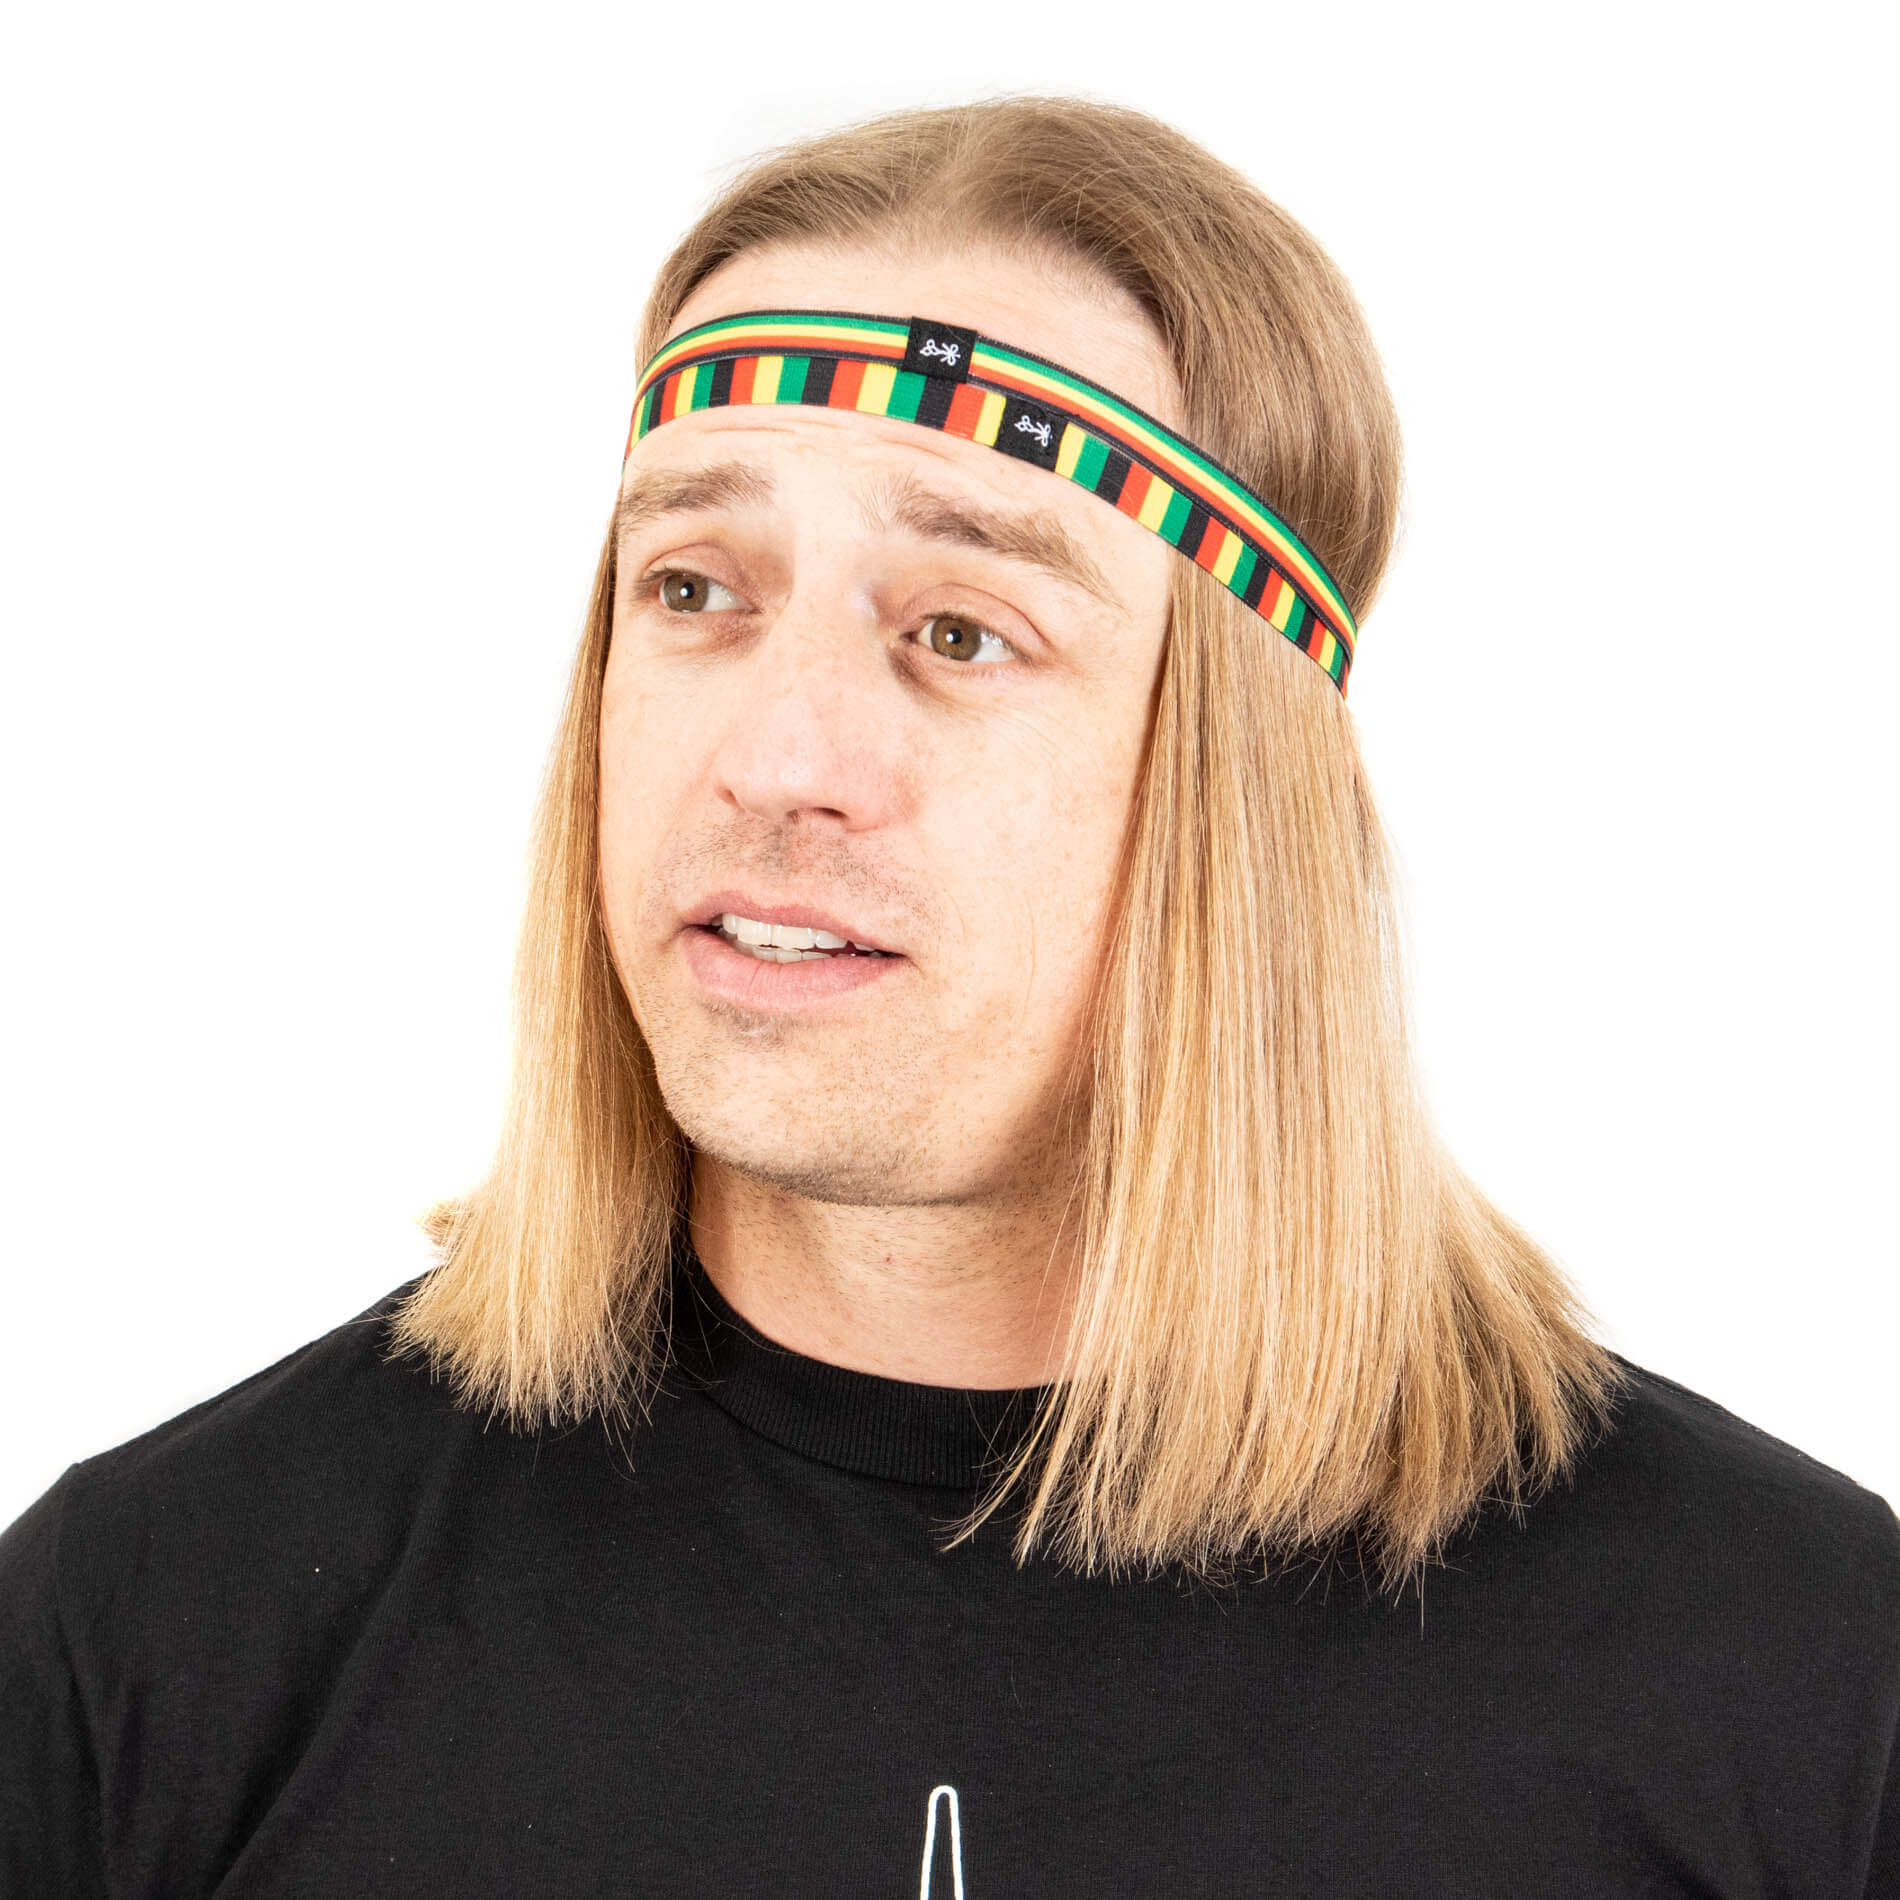 Dual reggie style thin headbands draped of hair and long hair draped over ears.